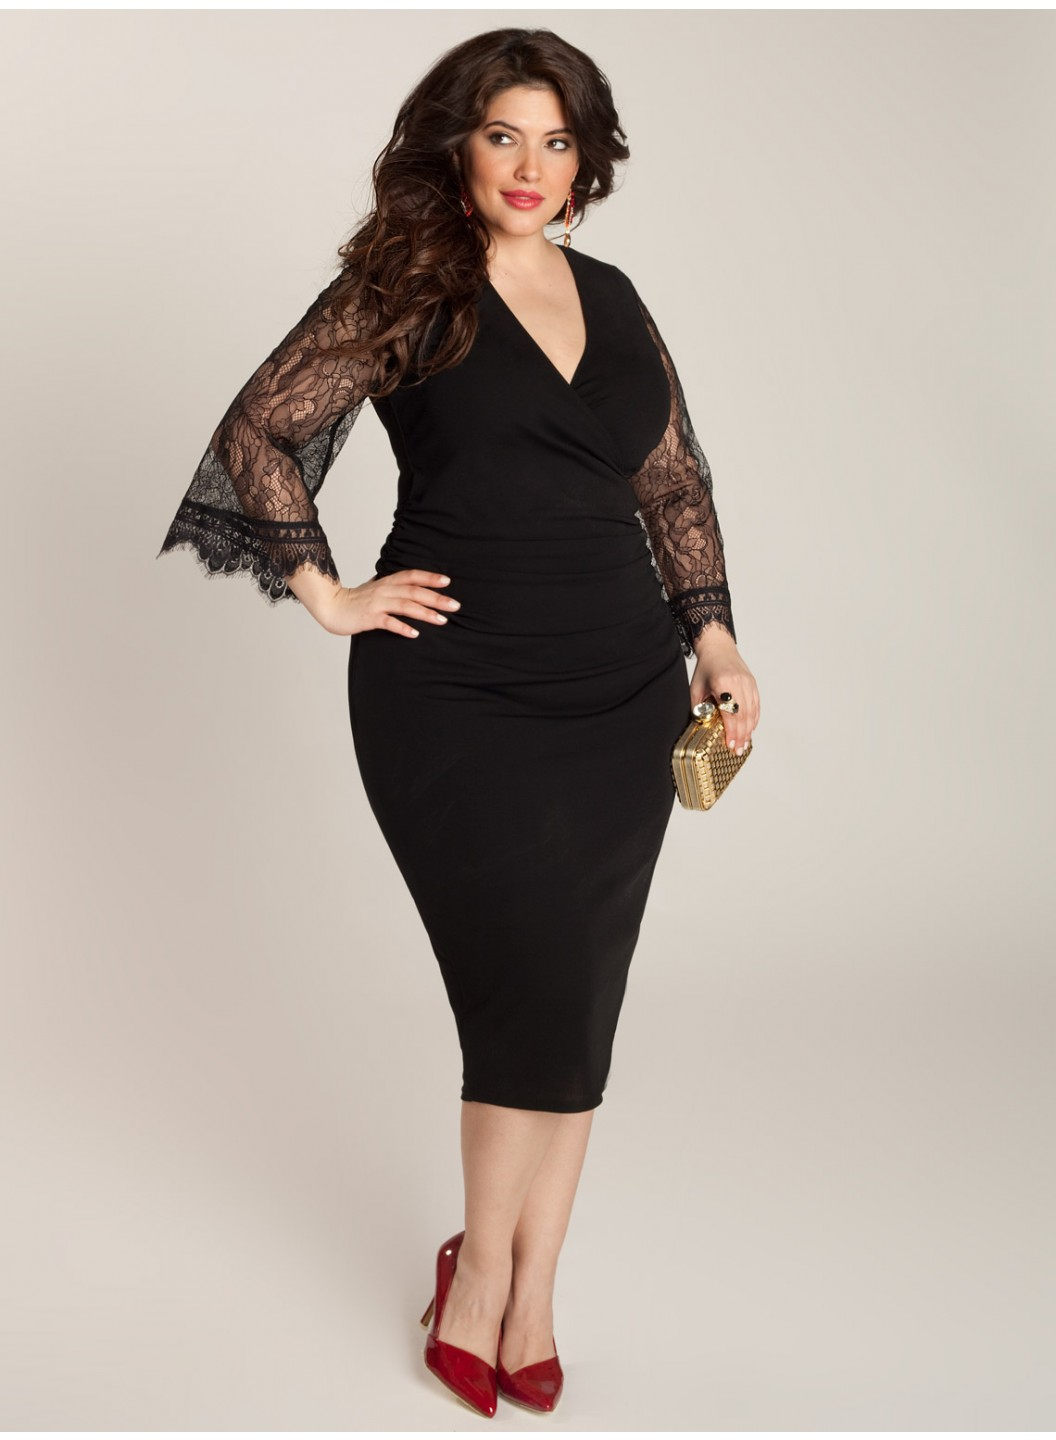 Plus size holiday fashions 43